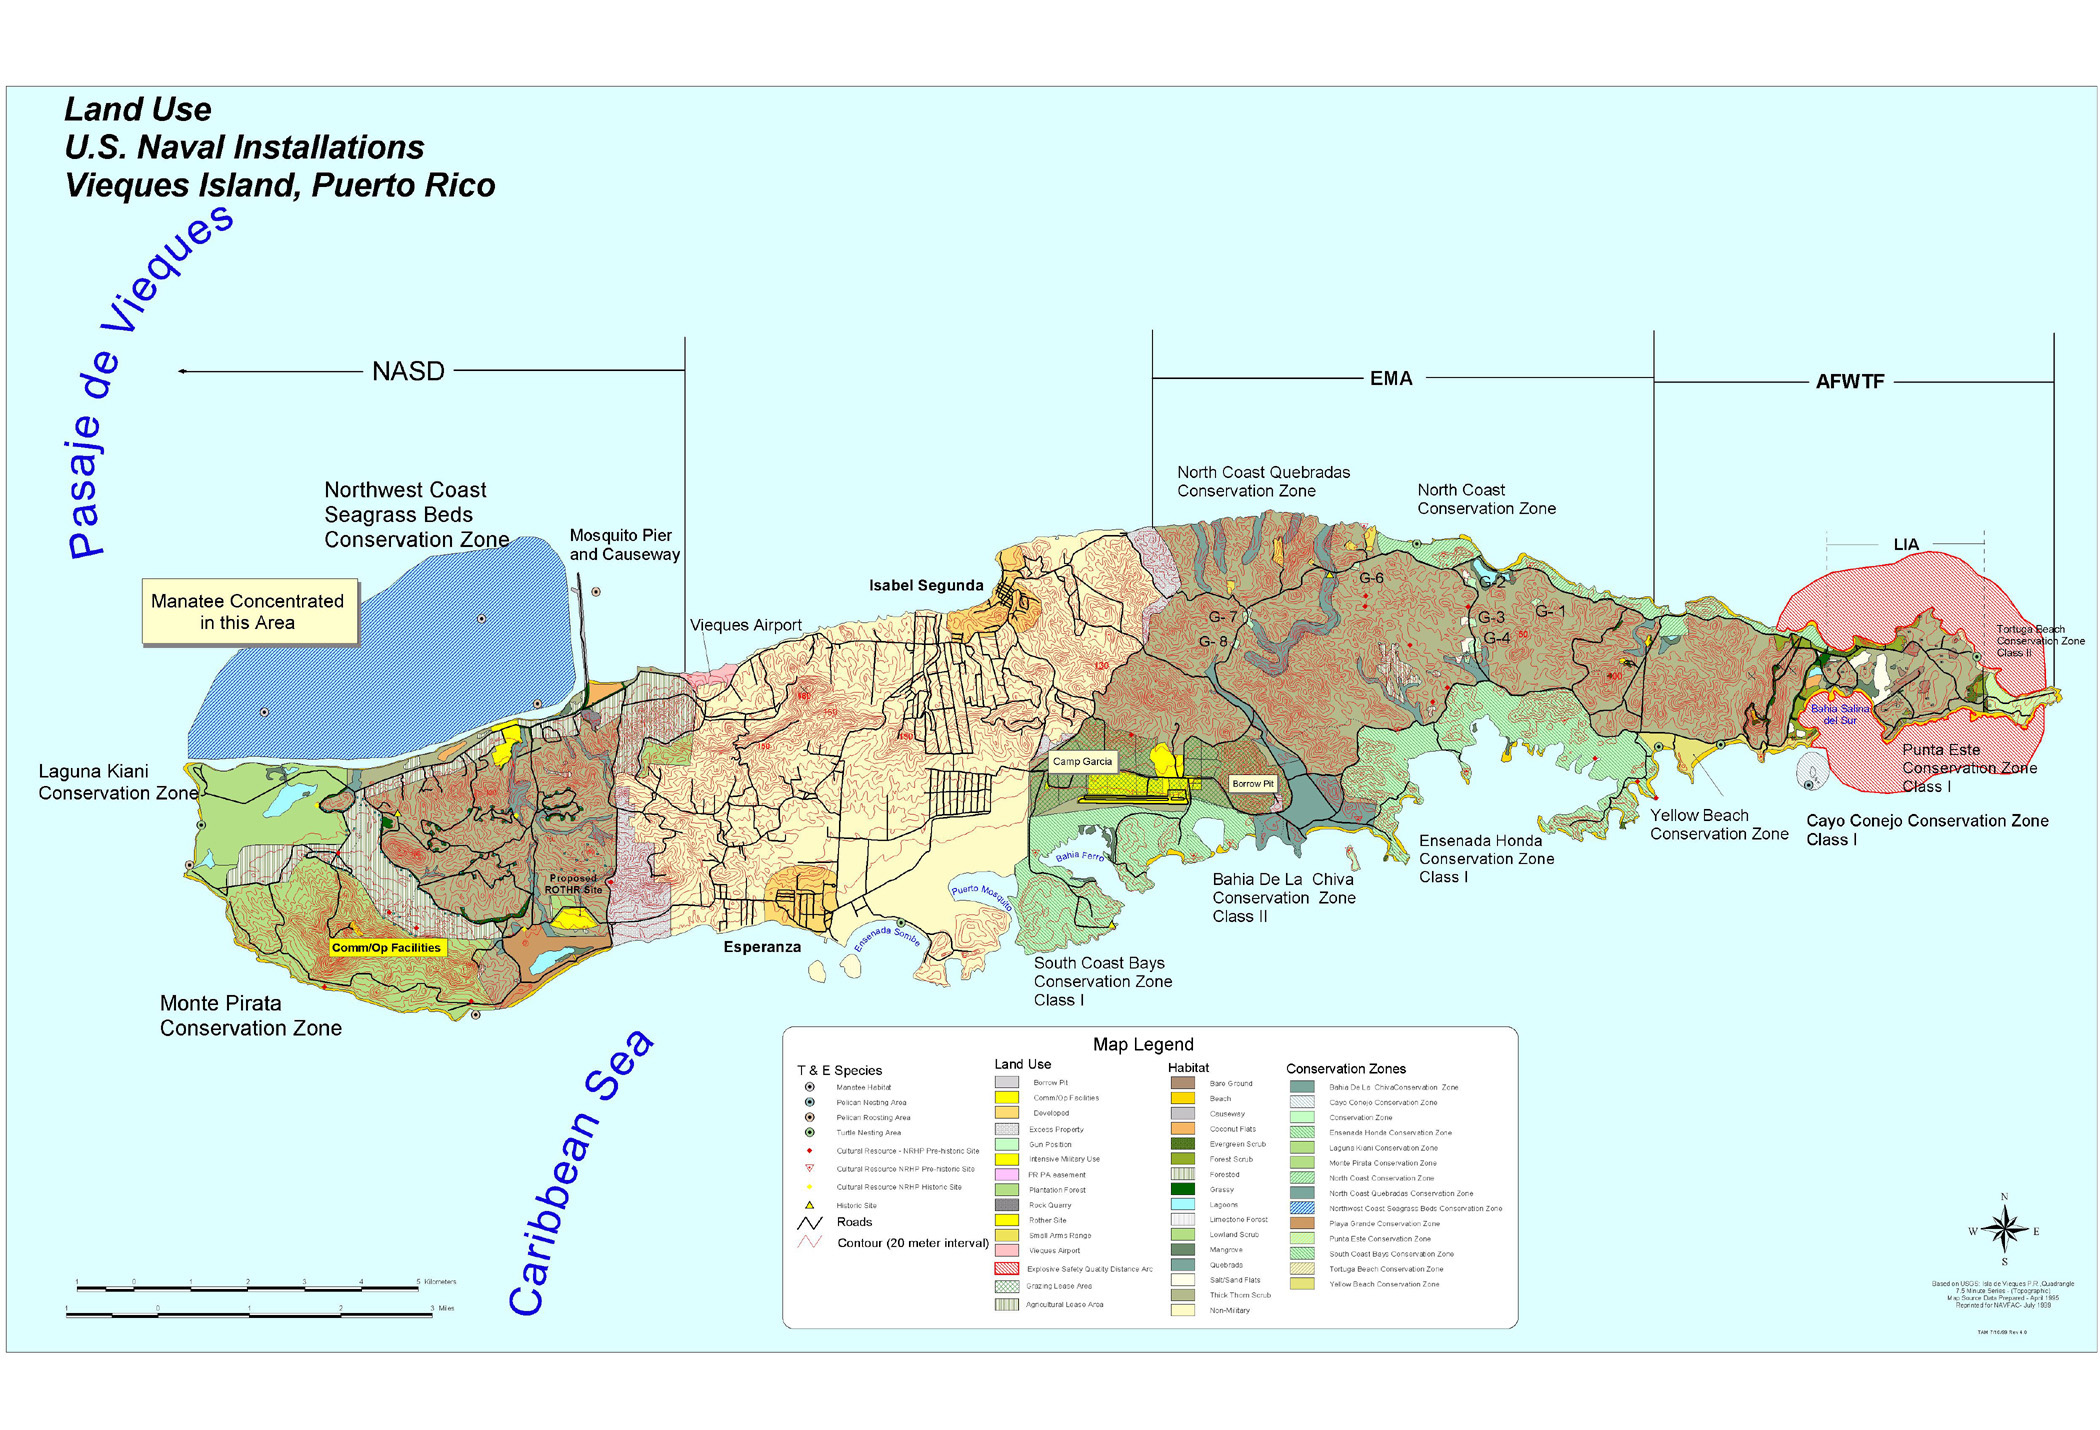 Download Free Puerto Rico Maps on map of madrid, map of the bvi's, map of guam, map of puerto rico, map of mayaguez, map of rio piedras, map of camuy river cave park, map of gippsland lakes, map of trujillo alto, map of bermuda, map of culebra, map of borinquen, map of guaynabo, map of singapore, map of arecibo, map of caguas, map of pelican key, map of victoria, map of barcelona, map of tobago,